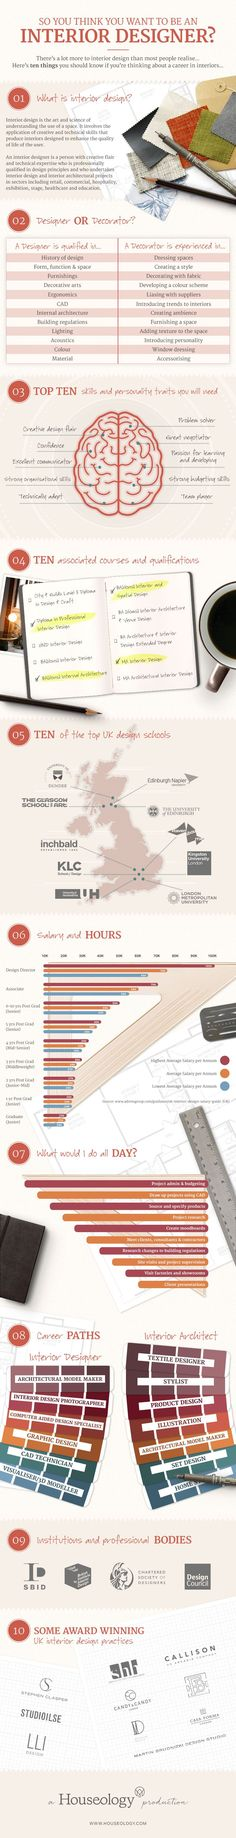 So you Think you Want to be an Interior Designer? #infographic #InteriorDesign #Career